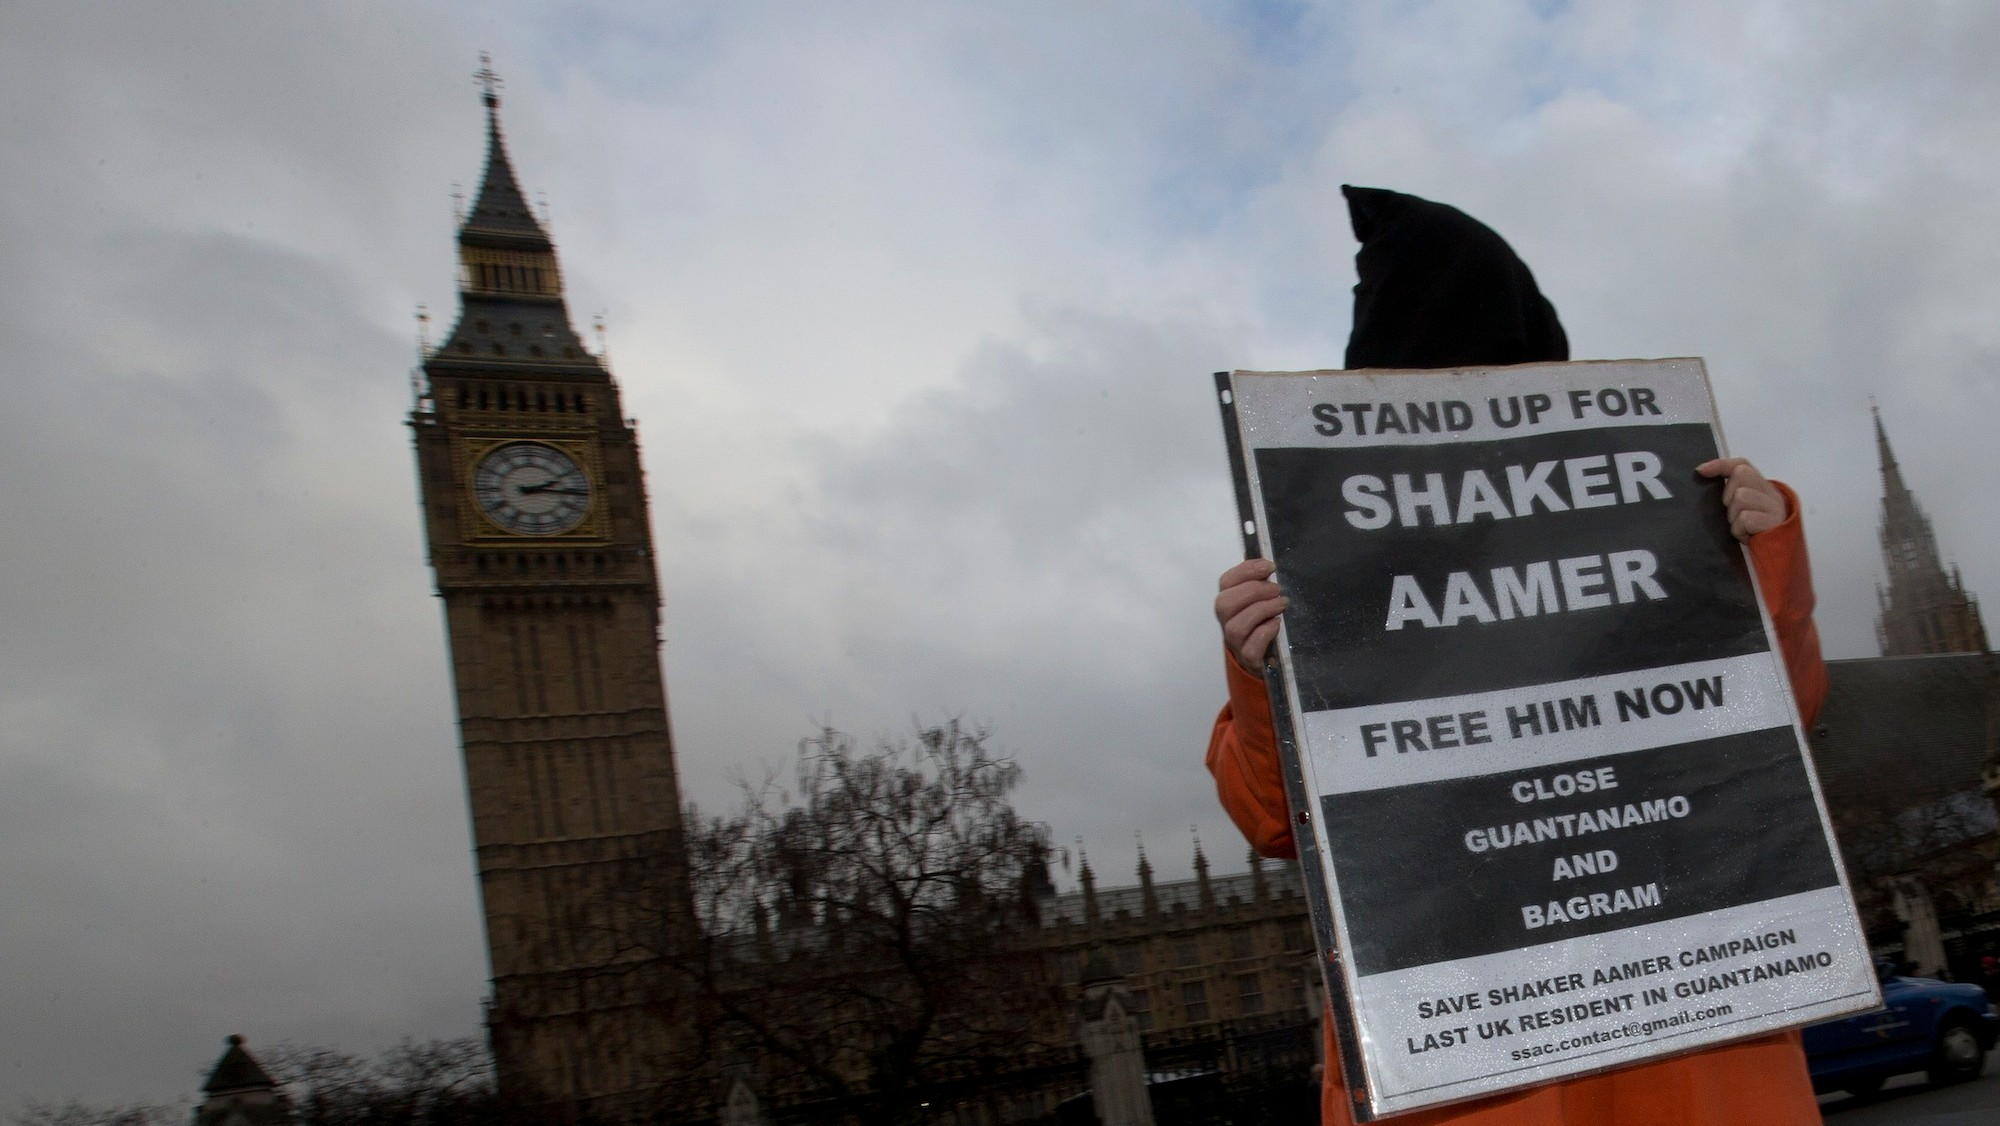 Obama Will 'Prioritize' the Case of Shaker Aamer, the Last British Detainee at Guantanamo